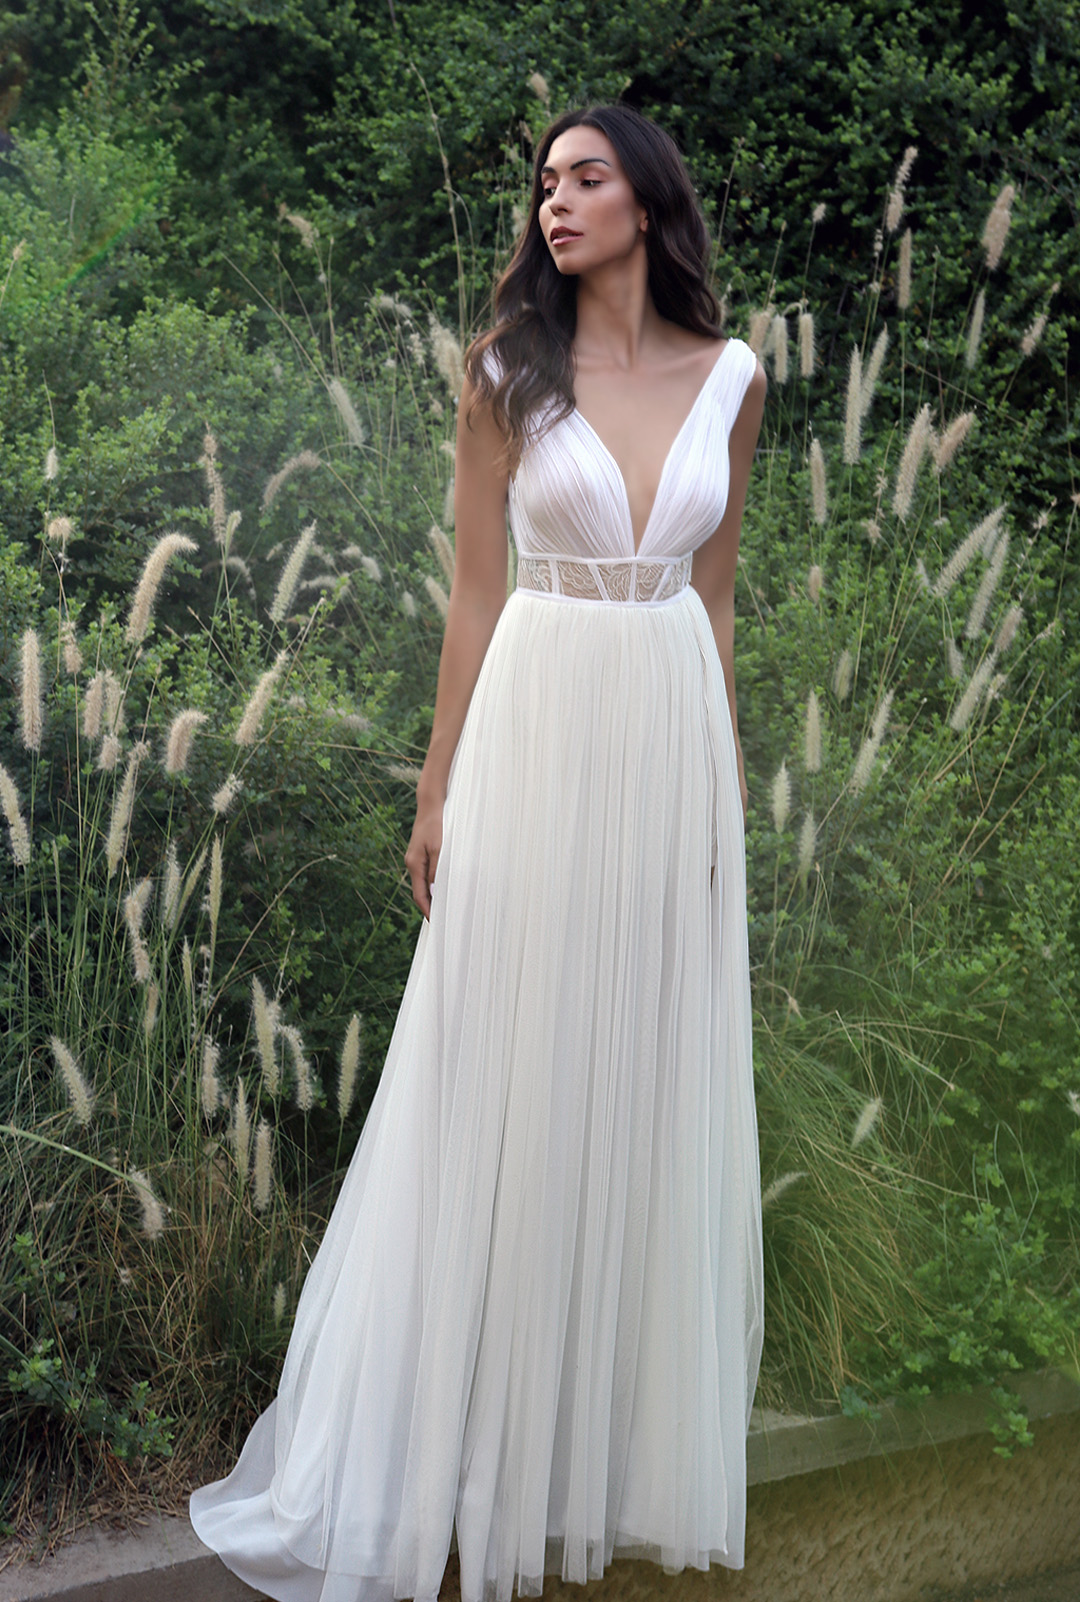 103-The MUSK Collection ELISH Bridal - 2